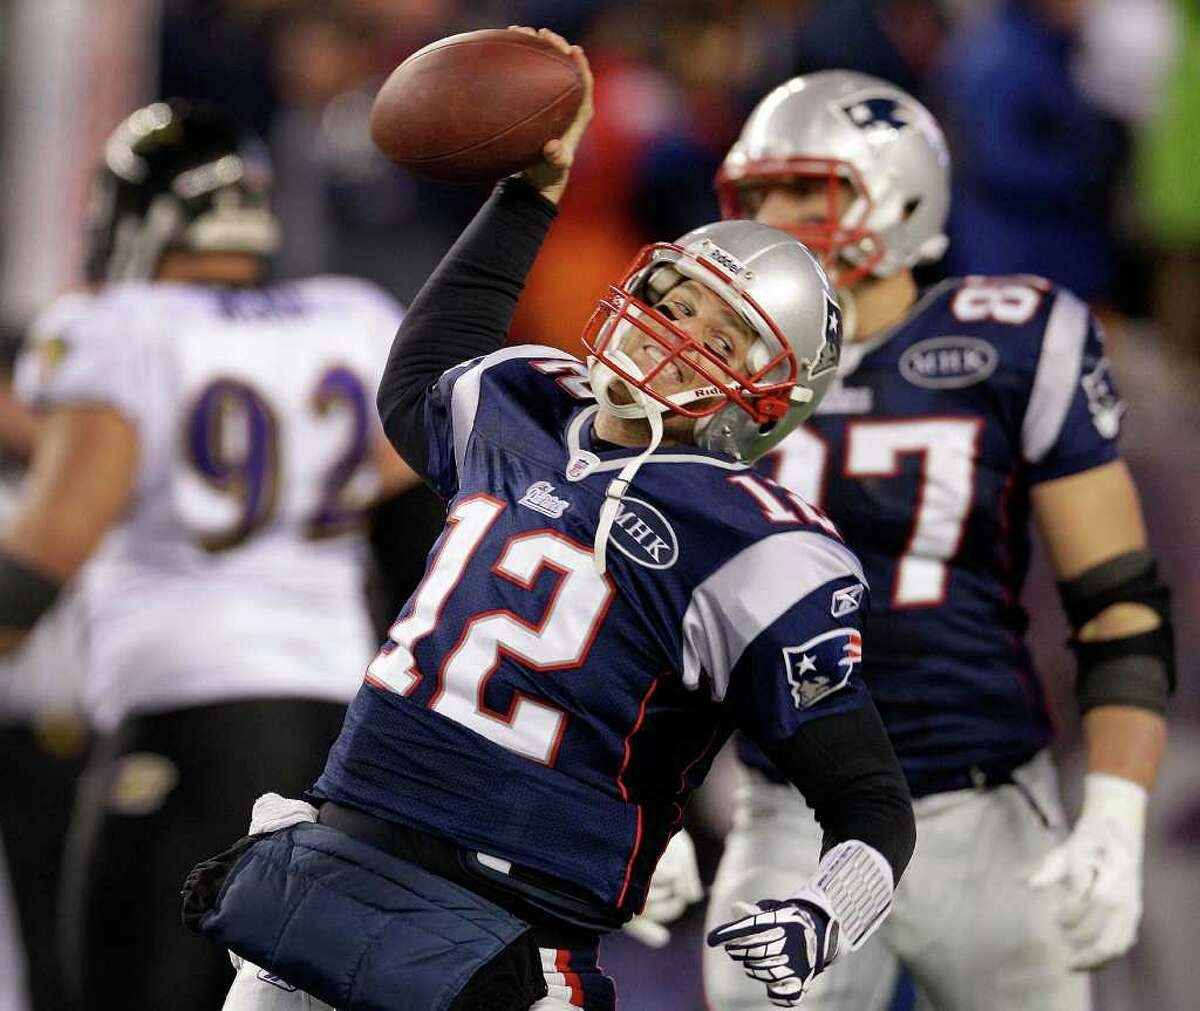 New England Patriots quarterback Tom Brady (12) celebrates after scoring a one yard touchdown during the second half of the AFC Championship NFL football game against the Baltimore Ravens Sunday, Jan. 22, 2012, in Foxborough, Mass. The champion has said he wants his team to be more like the San Antonio Spurs.